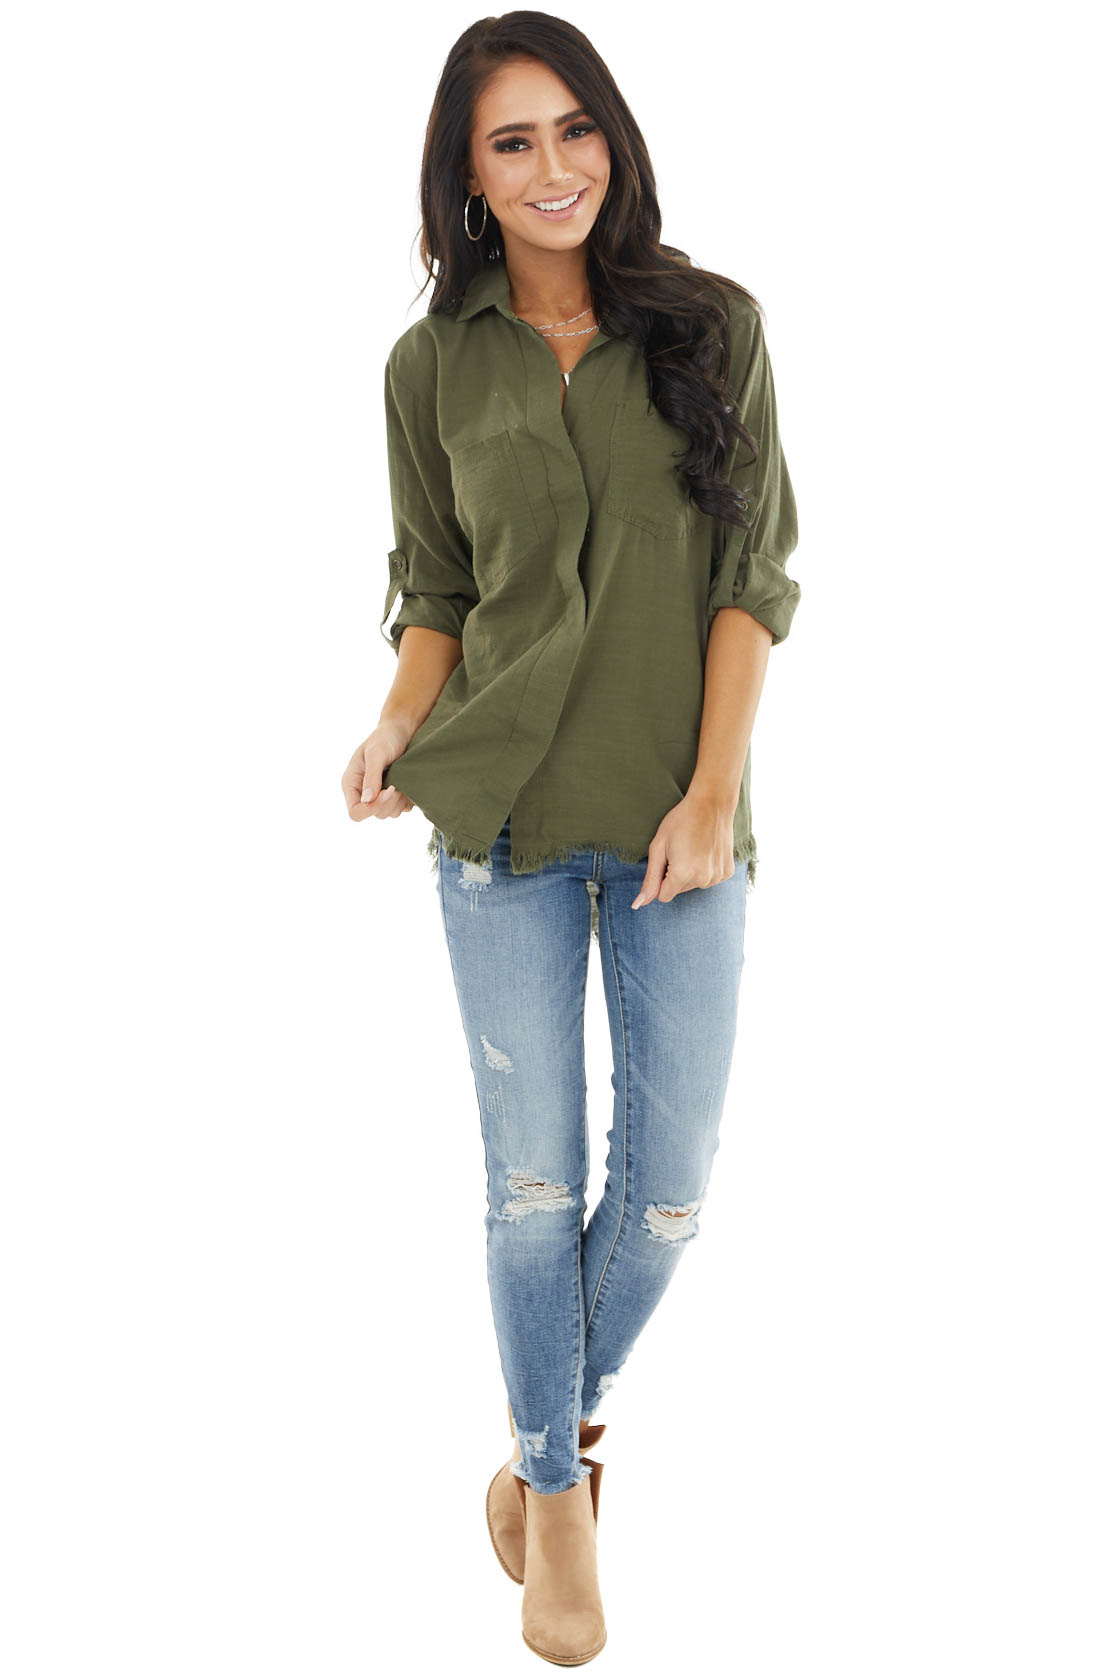 Olive Button Up Collared Long Sleeve Top with Chest Pockets